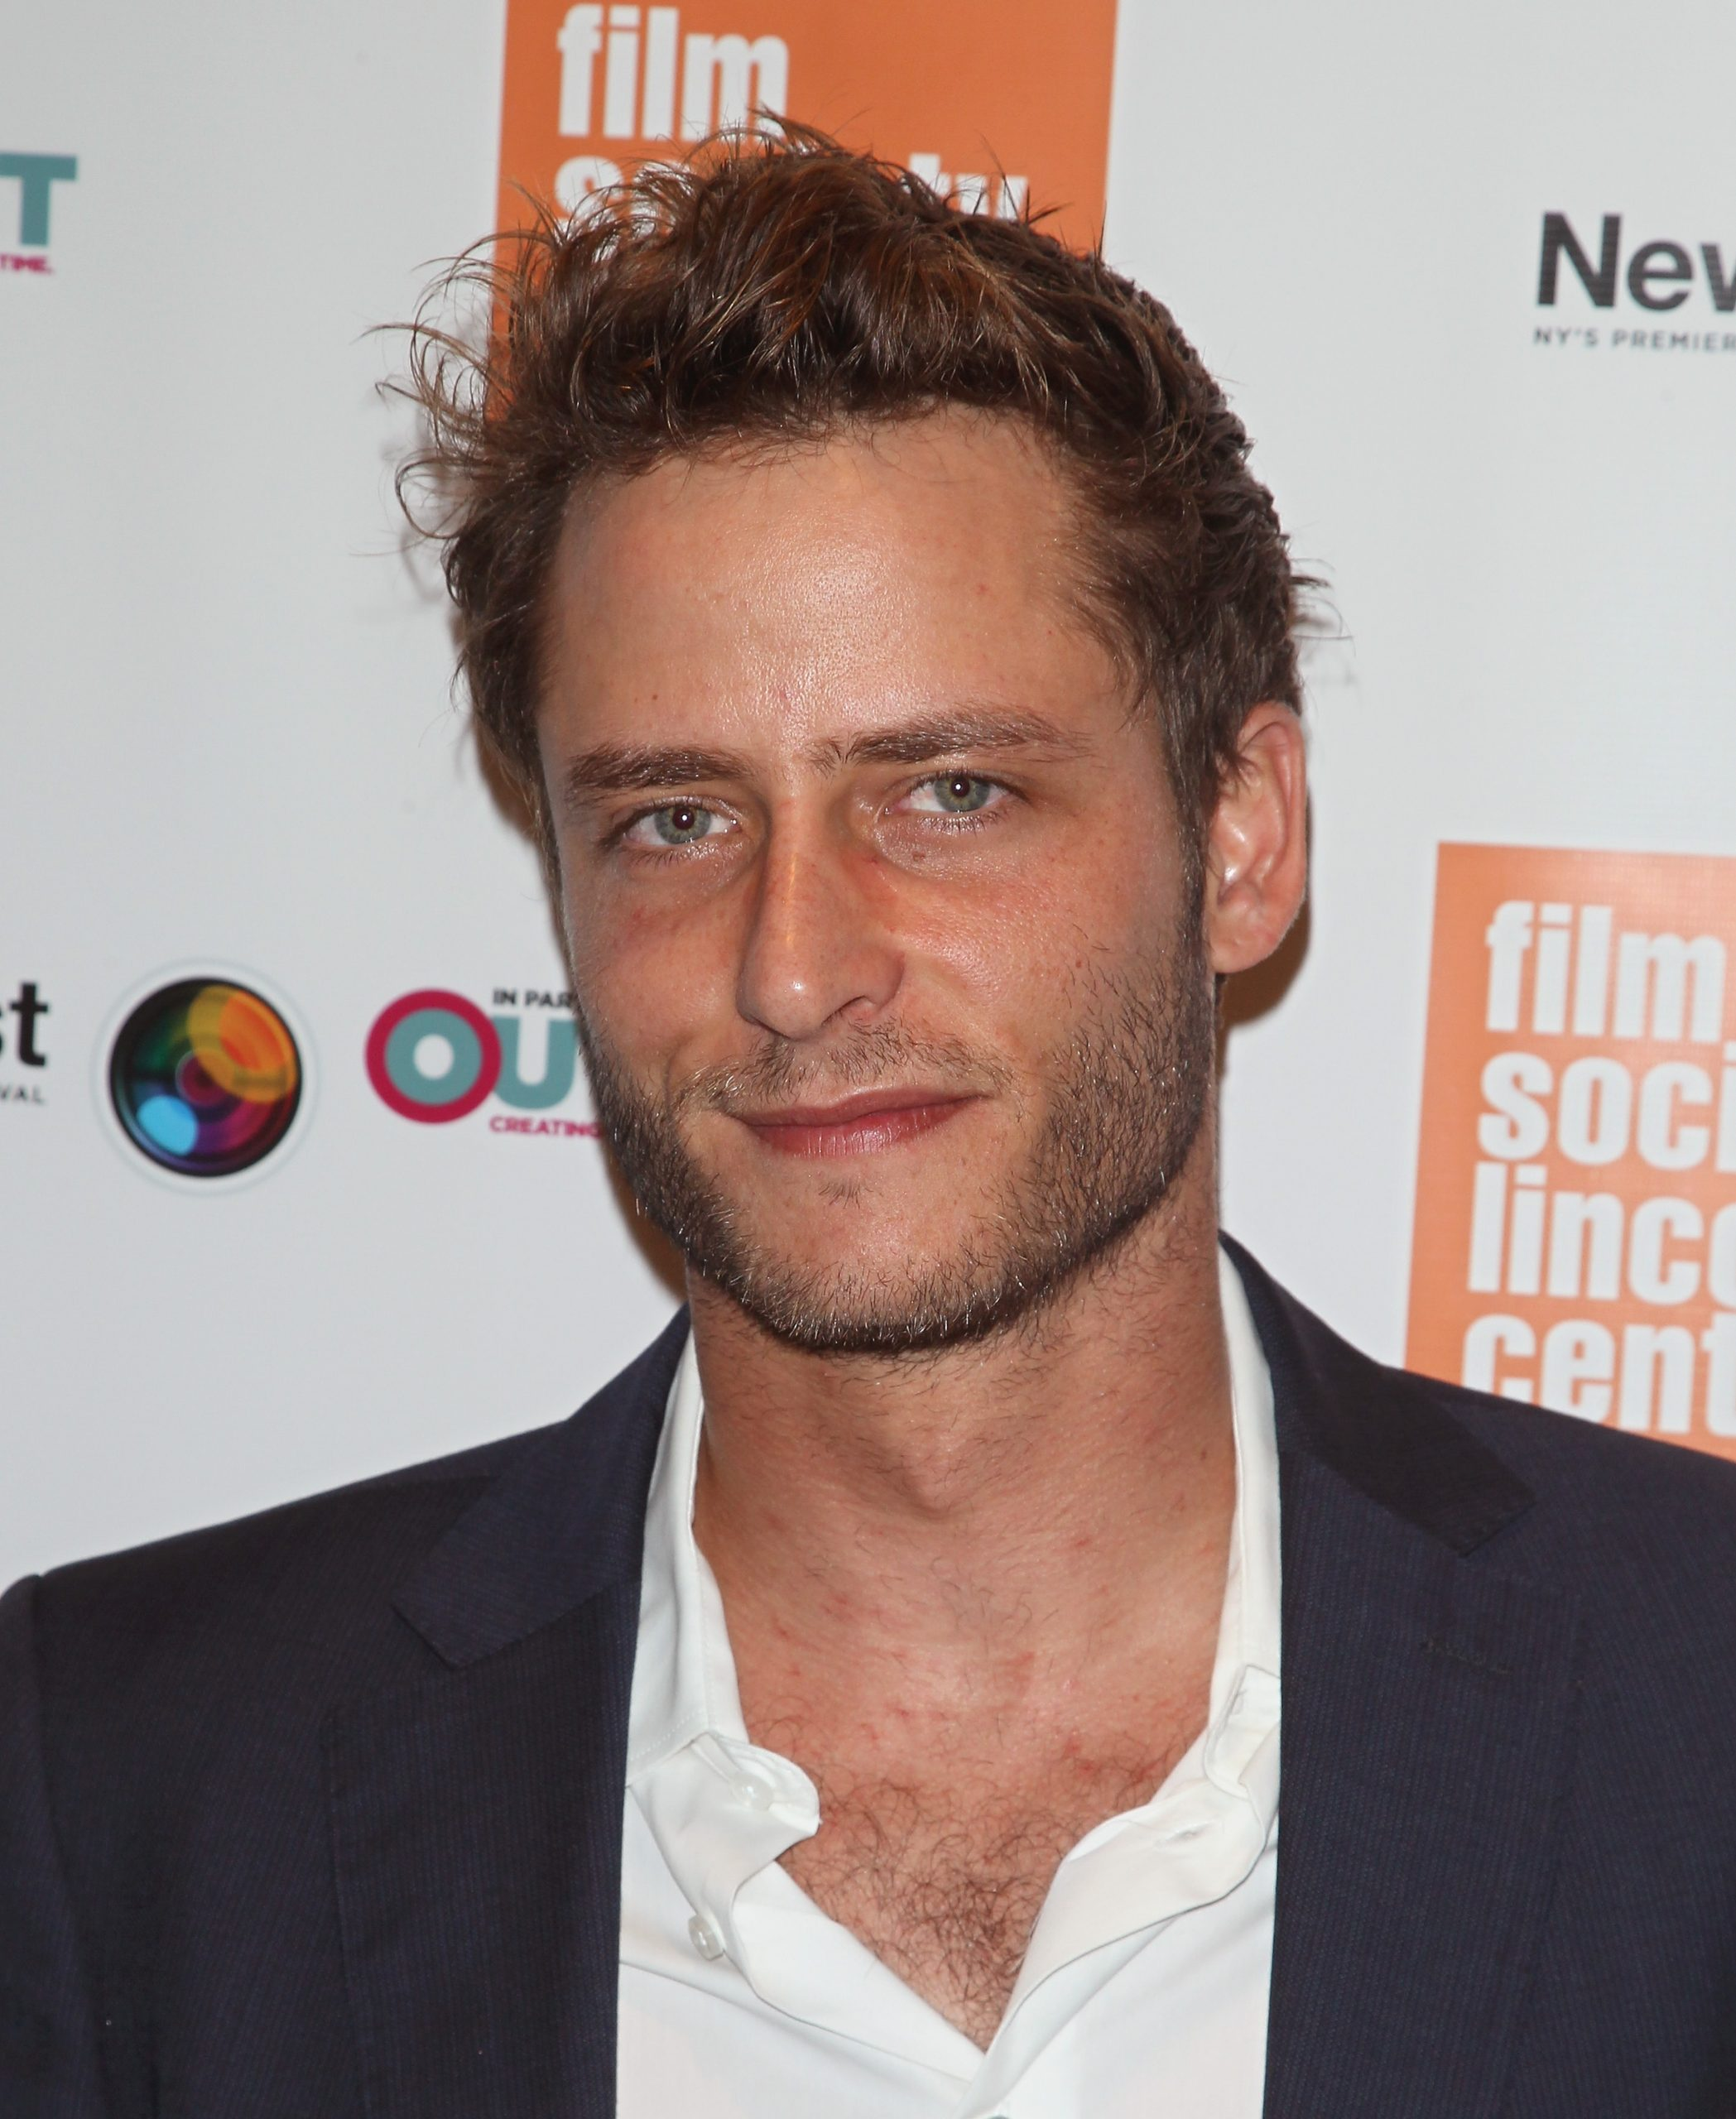 It looks like 'Shtisel' star Michael Aloni and his cast mates won't be back for the drama's fourth season.